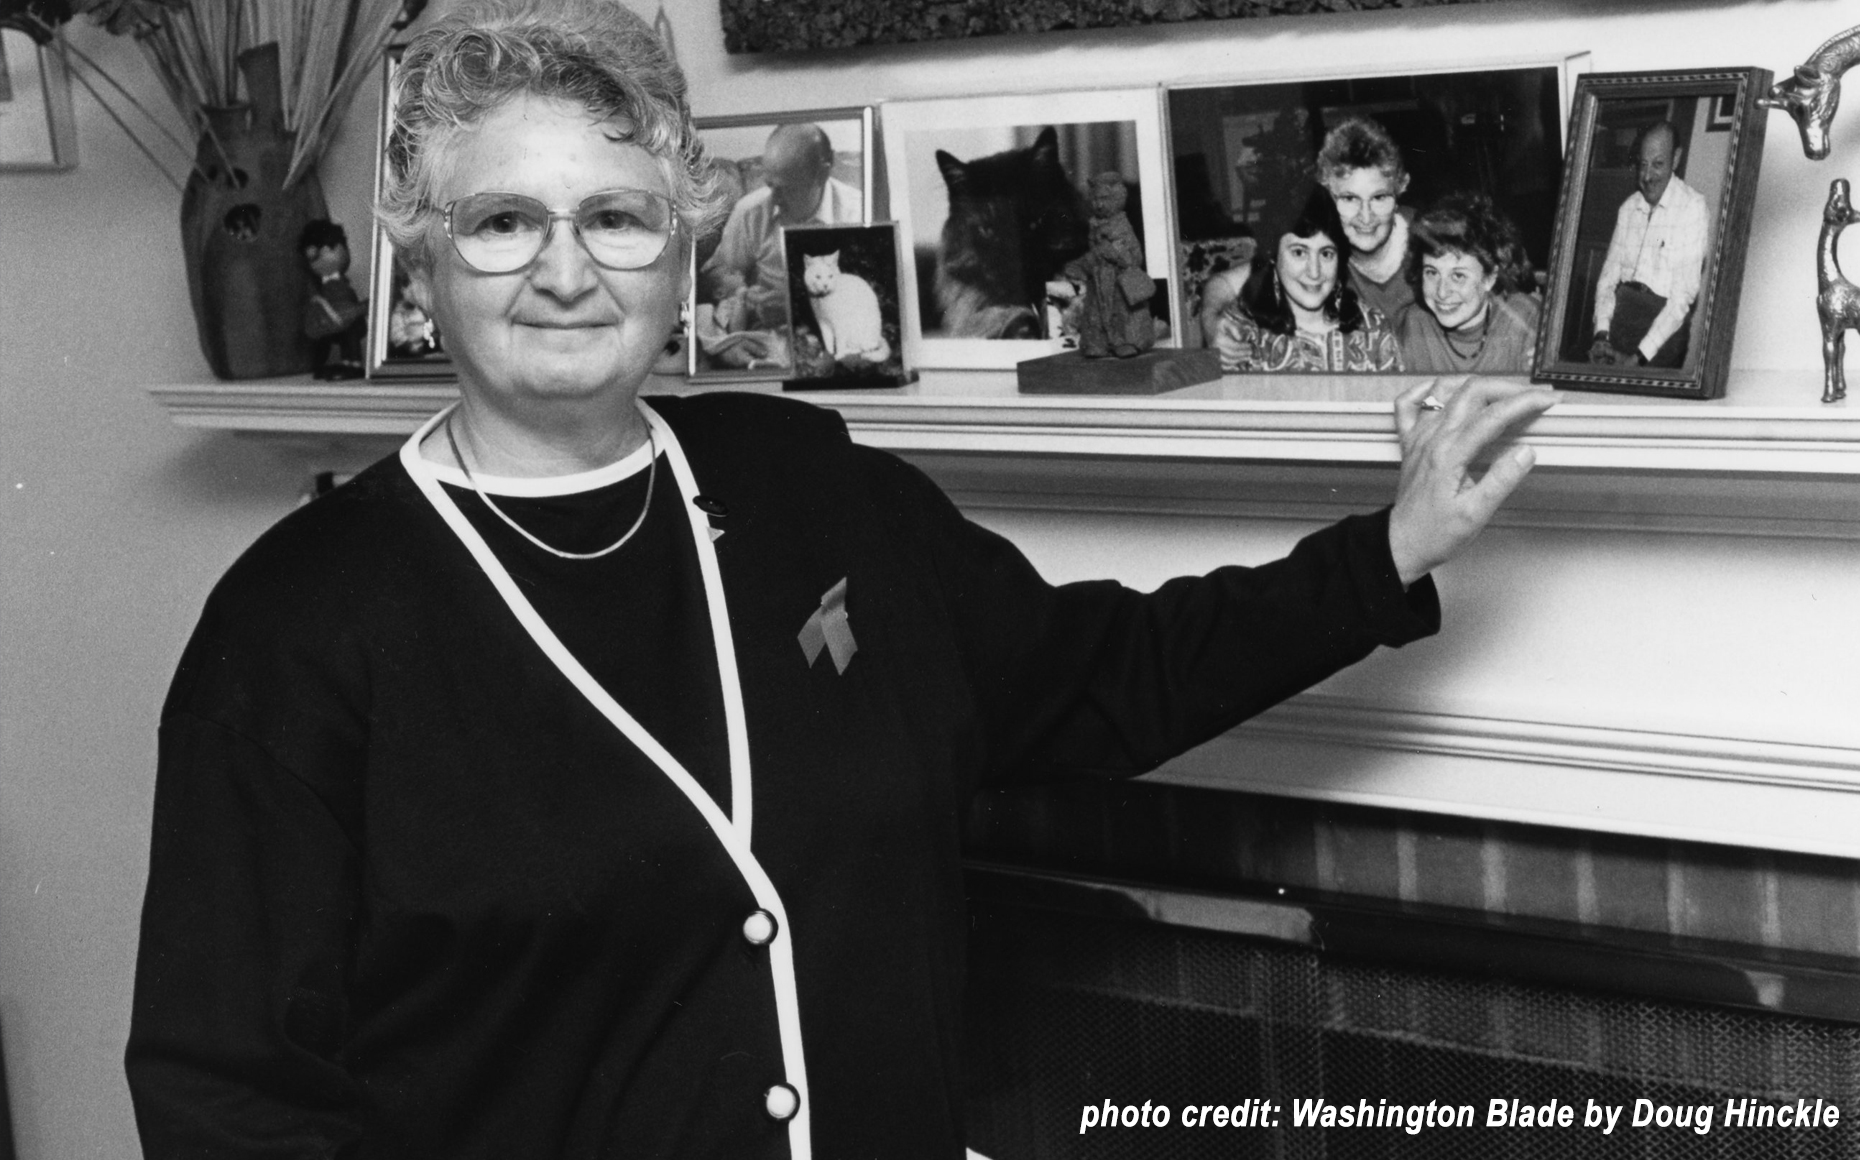 PFLAG National President Paulette Goodman stands her left hand resting on a fireplace mantle which is adorned with family pictures. She wears glasses, a necklace, a sweater, and has an AIDS ribbon pinned over her heart. The photo is in black and white.